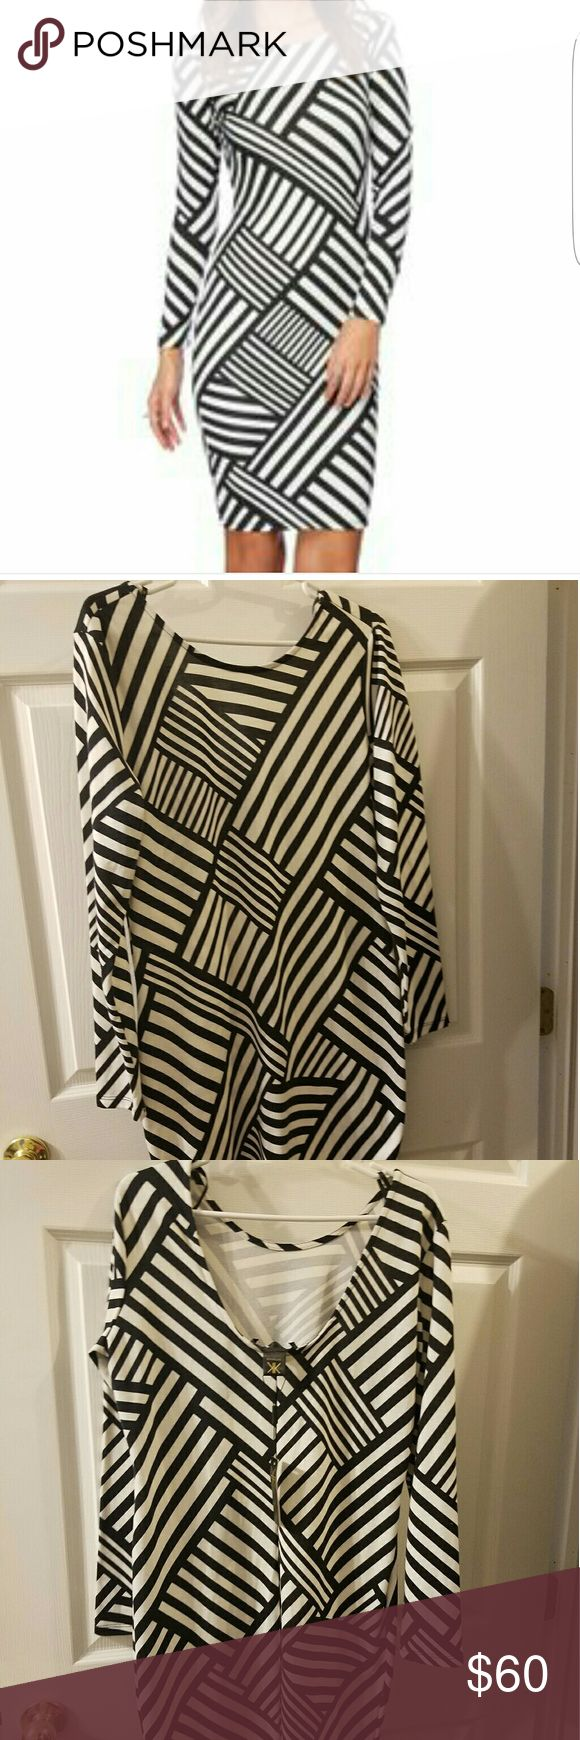 Body Con Striped Dress - Kardashian Kollection BRAND NEW!!! Black and white stripe body con dress. Fitted, knee length, long sleeves. No zippers or buttons. Very Flattering! Kardashian Kollection Dresses Long Sleeve